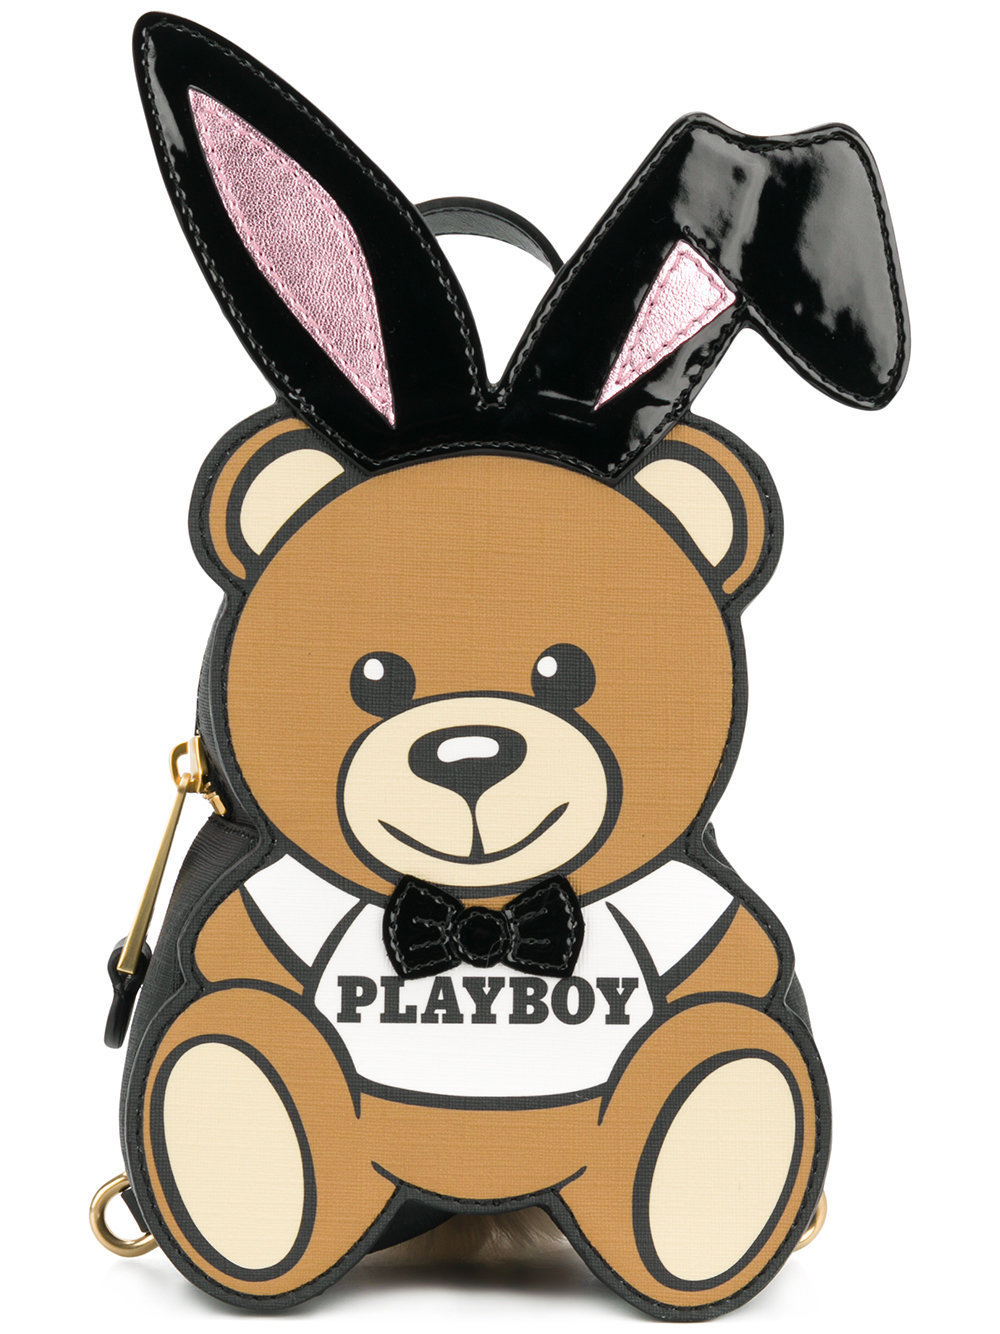 Ready to Bear Playboy バックパック